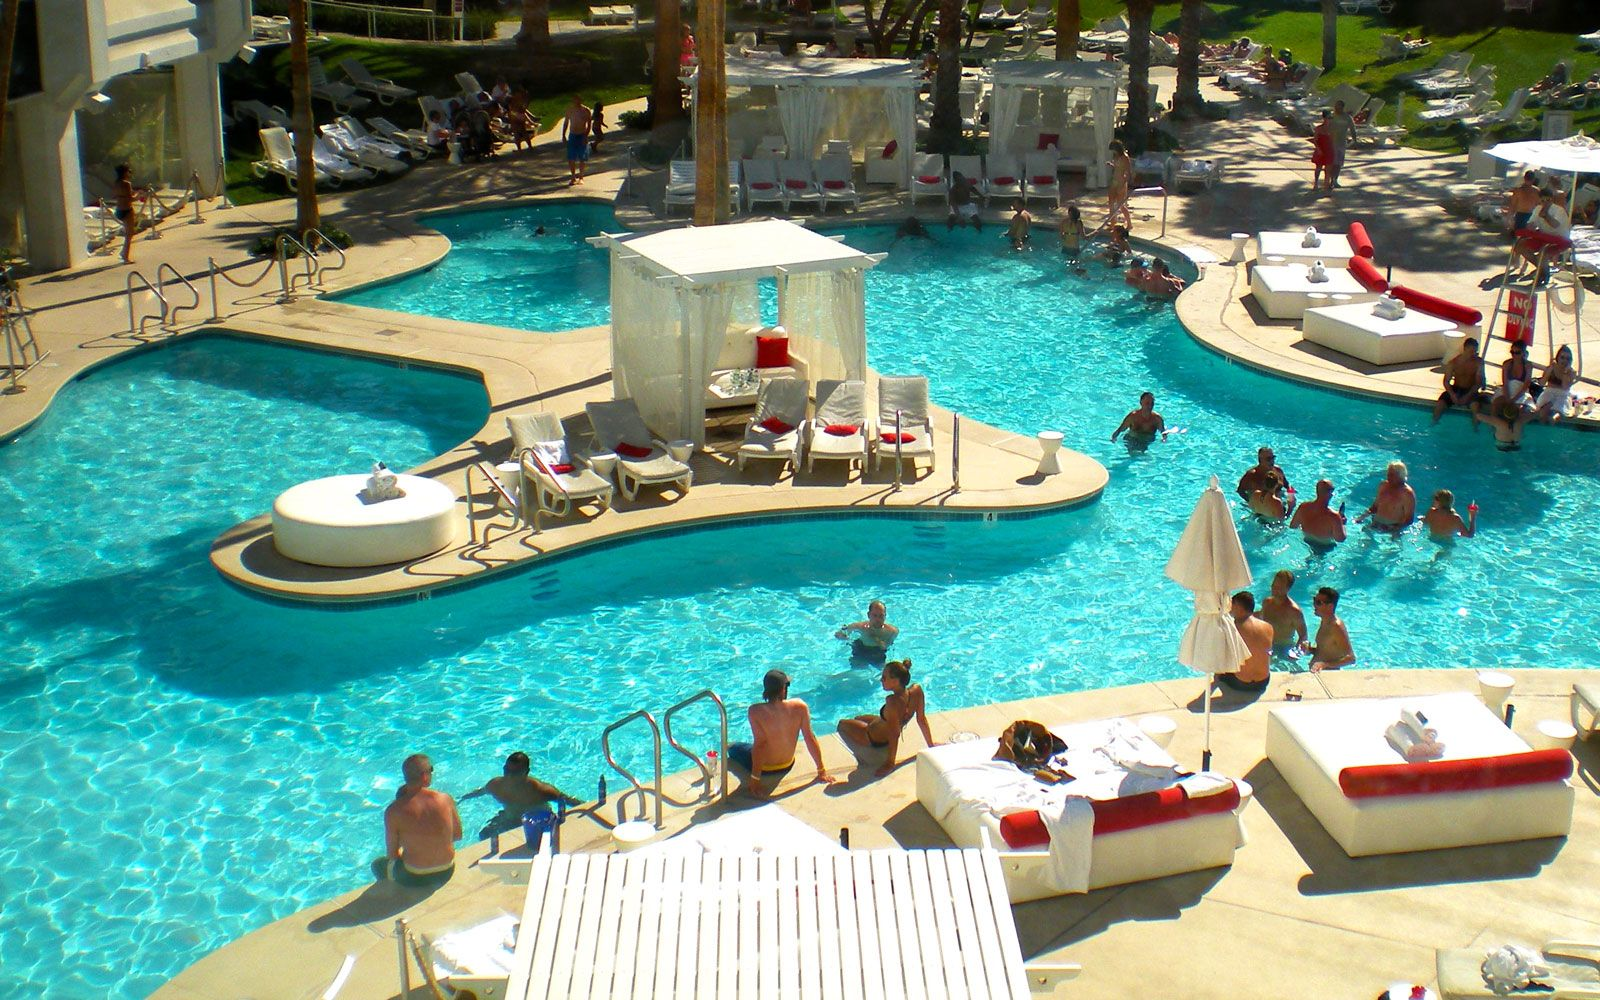 Coolest Swim Up Bars In The World Las Vegas Pool Las Vegas Restaurants Las Vegas Hotel Deals